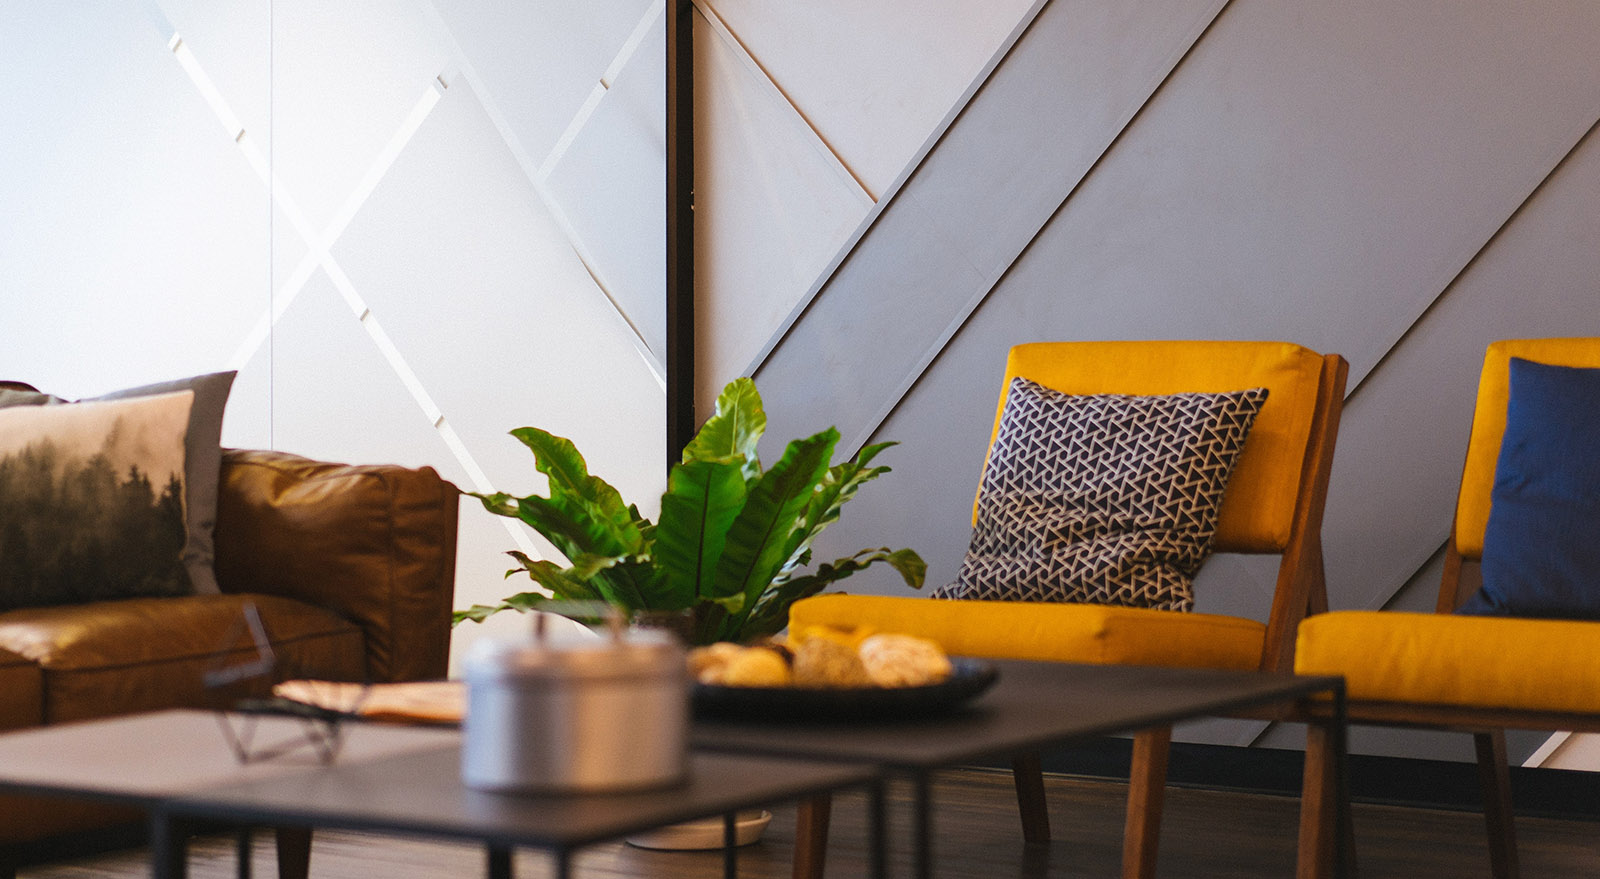 Psychological Impacts of Colourful Décor